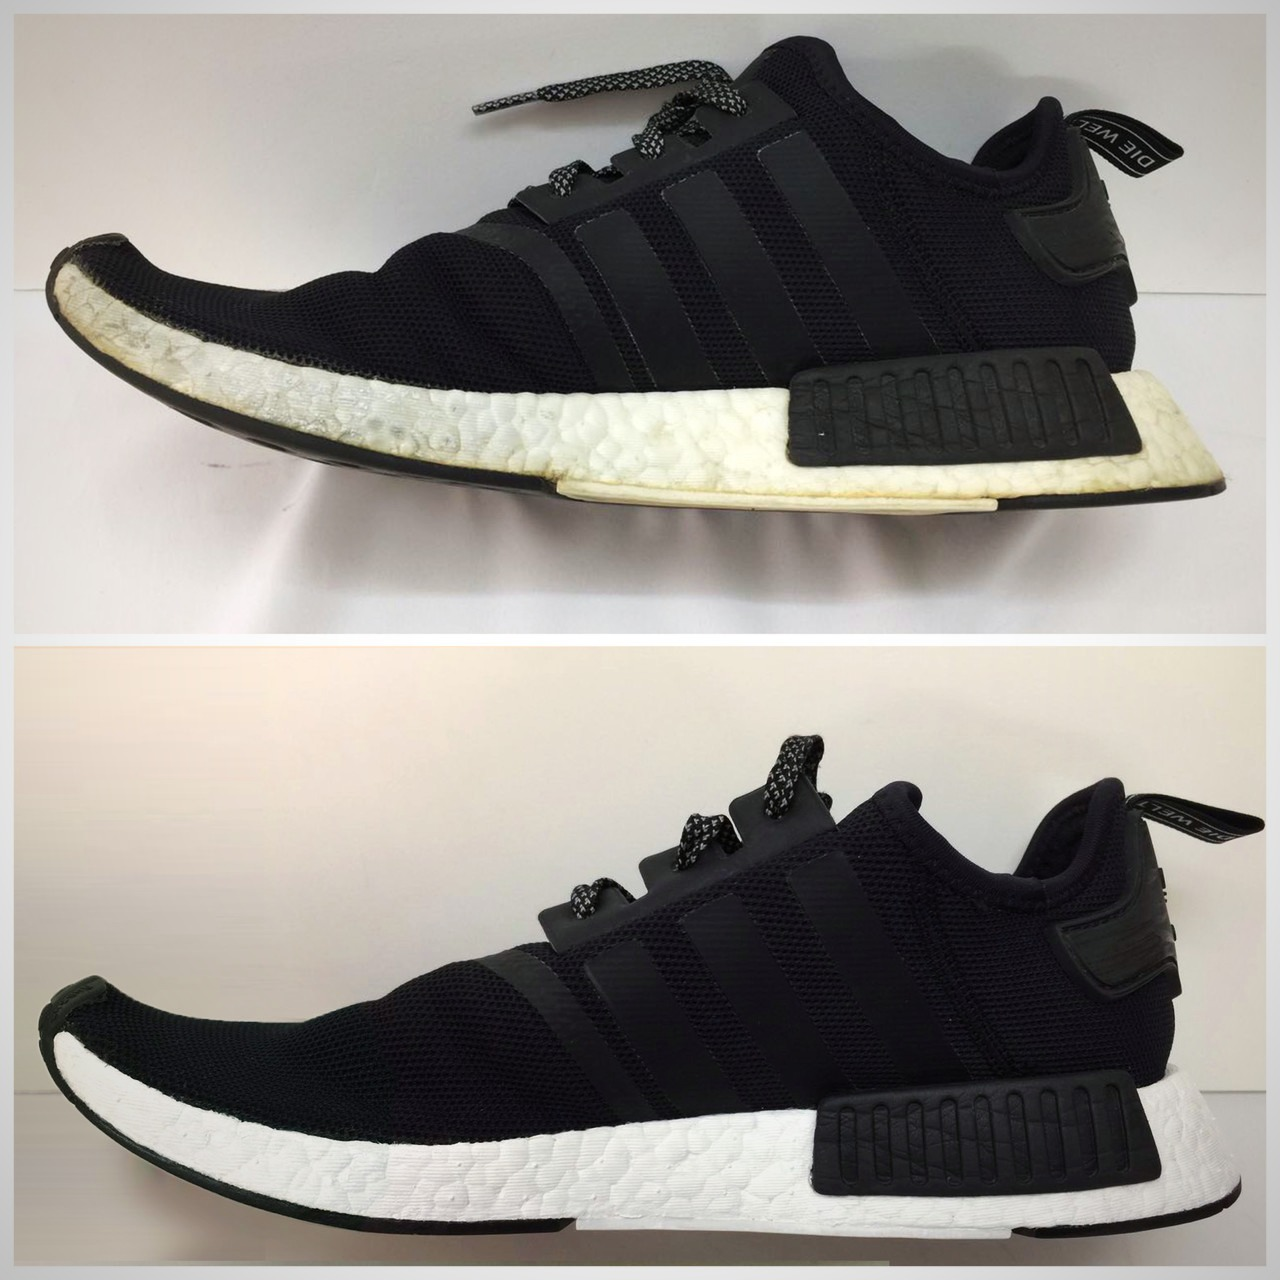 Adidas NMD Sneakers Cleaning